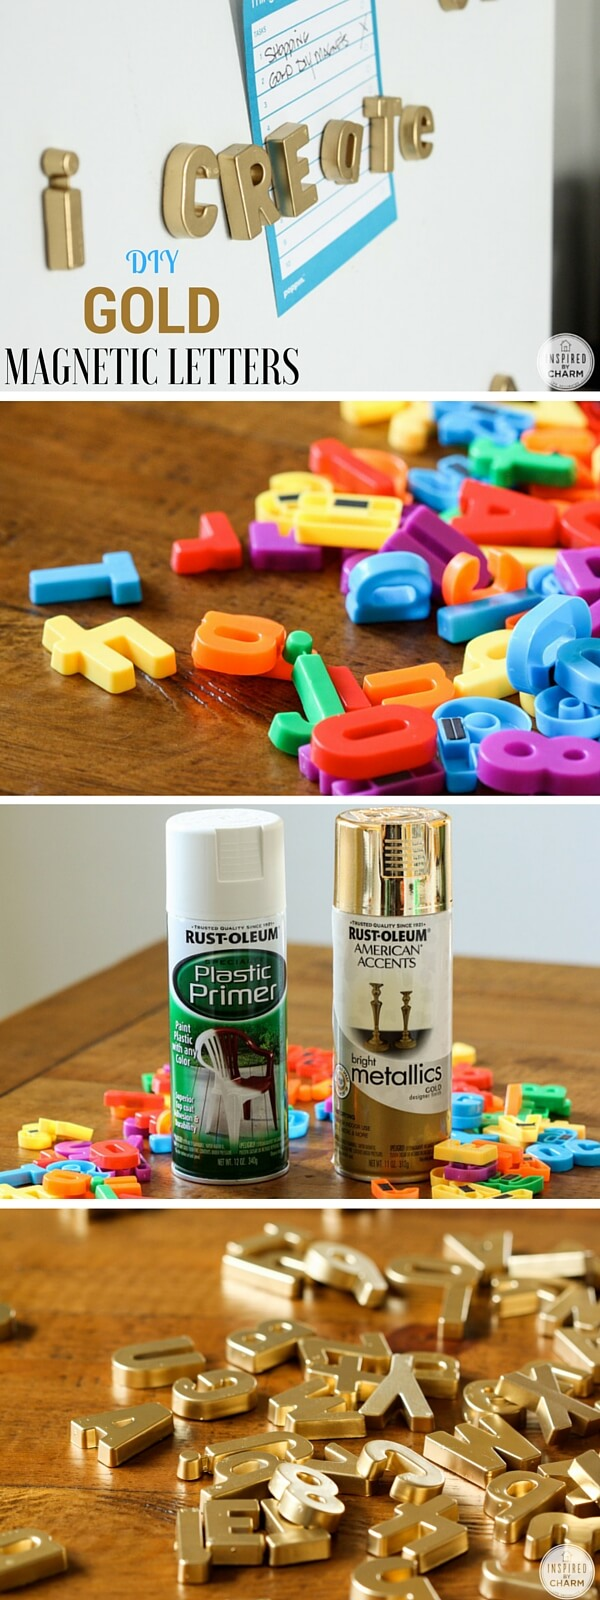 gold-magnetic-letters-k4craft Easy DIY Home Decor Crafts - Step by step